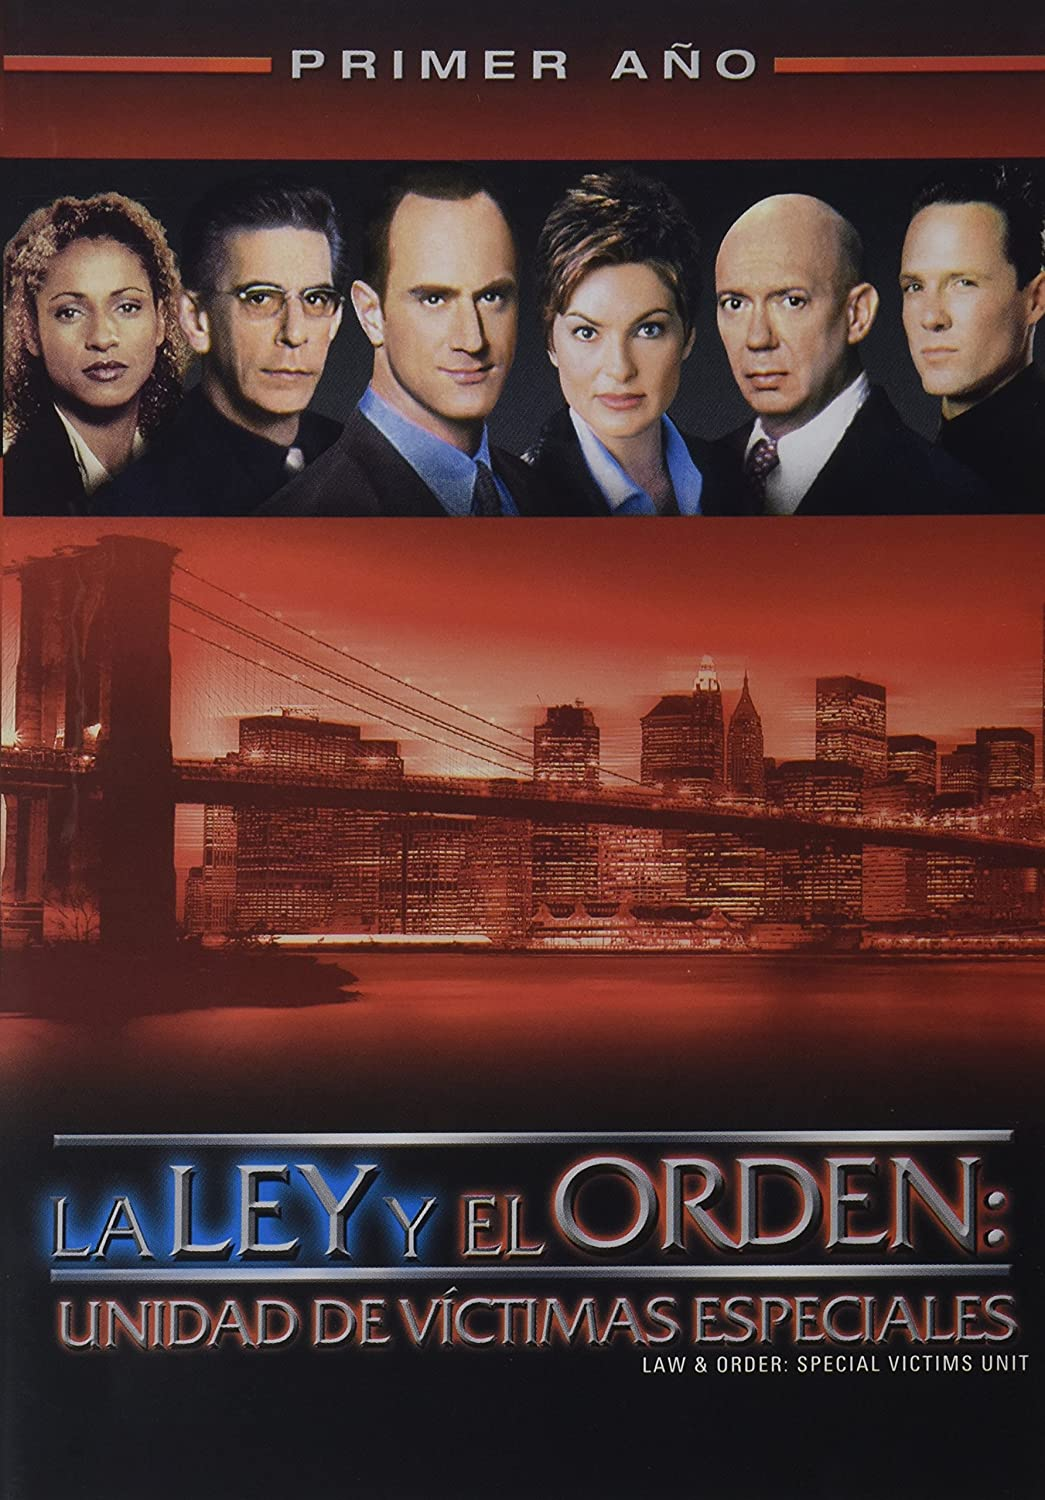 Amazon.com: La Ley Y El Orden:Unidad De Victimas Especiales Primer Ano(Law & Order:Special Victims Unit): Movies & TV